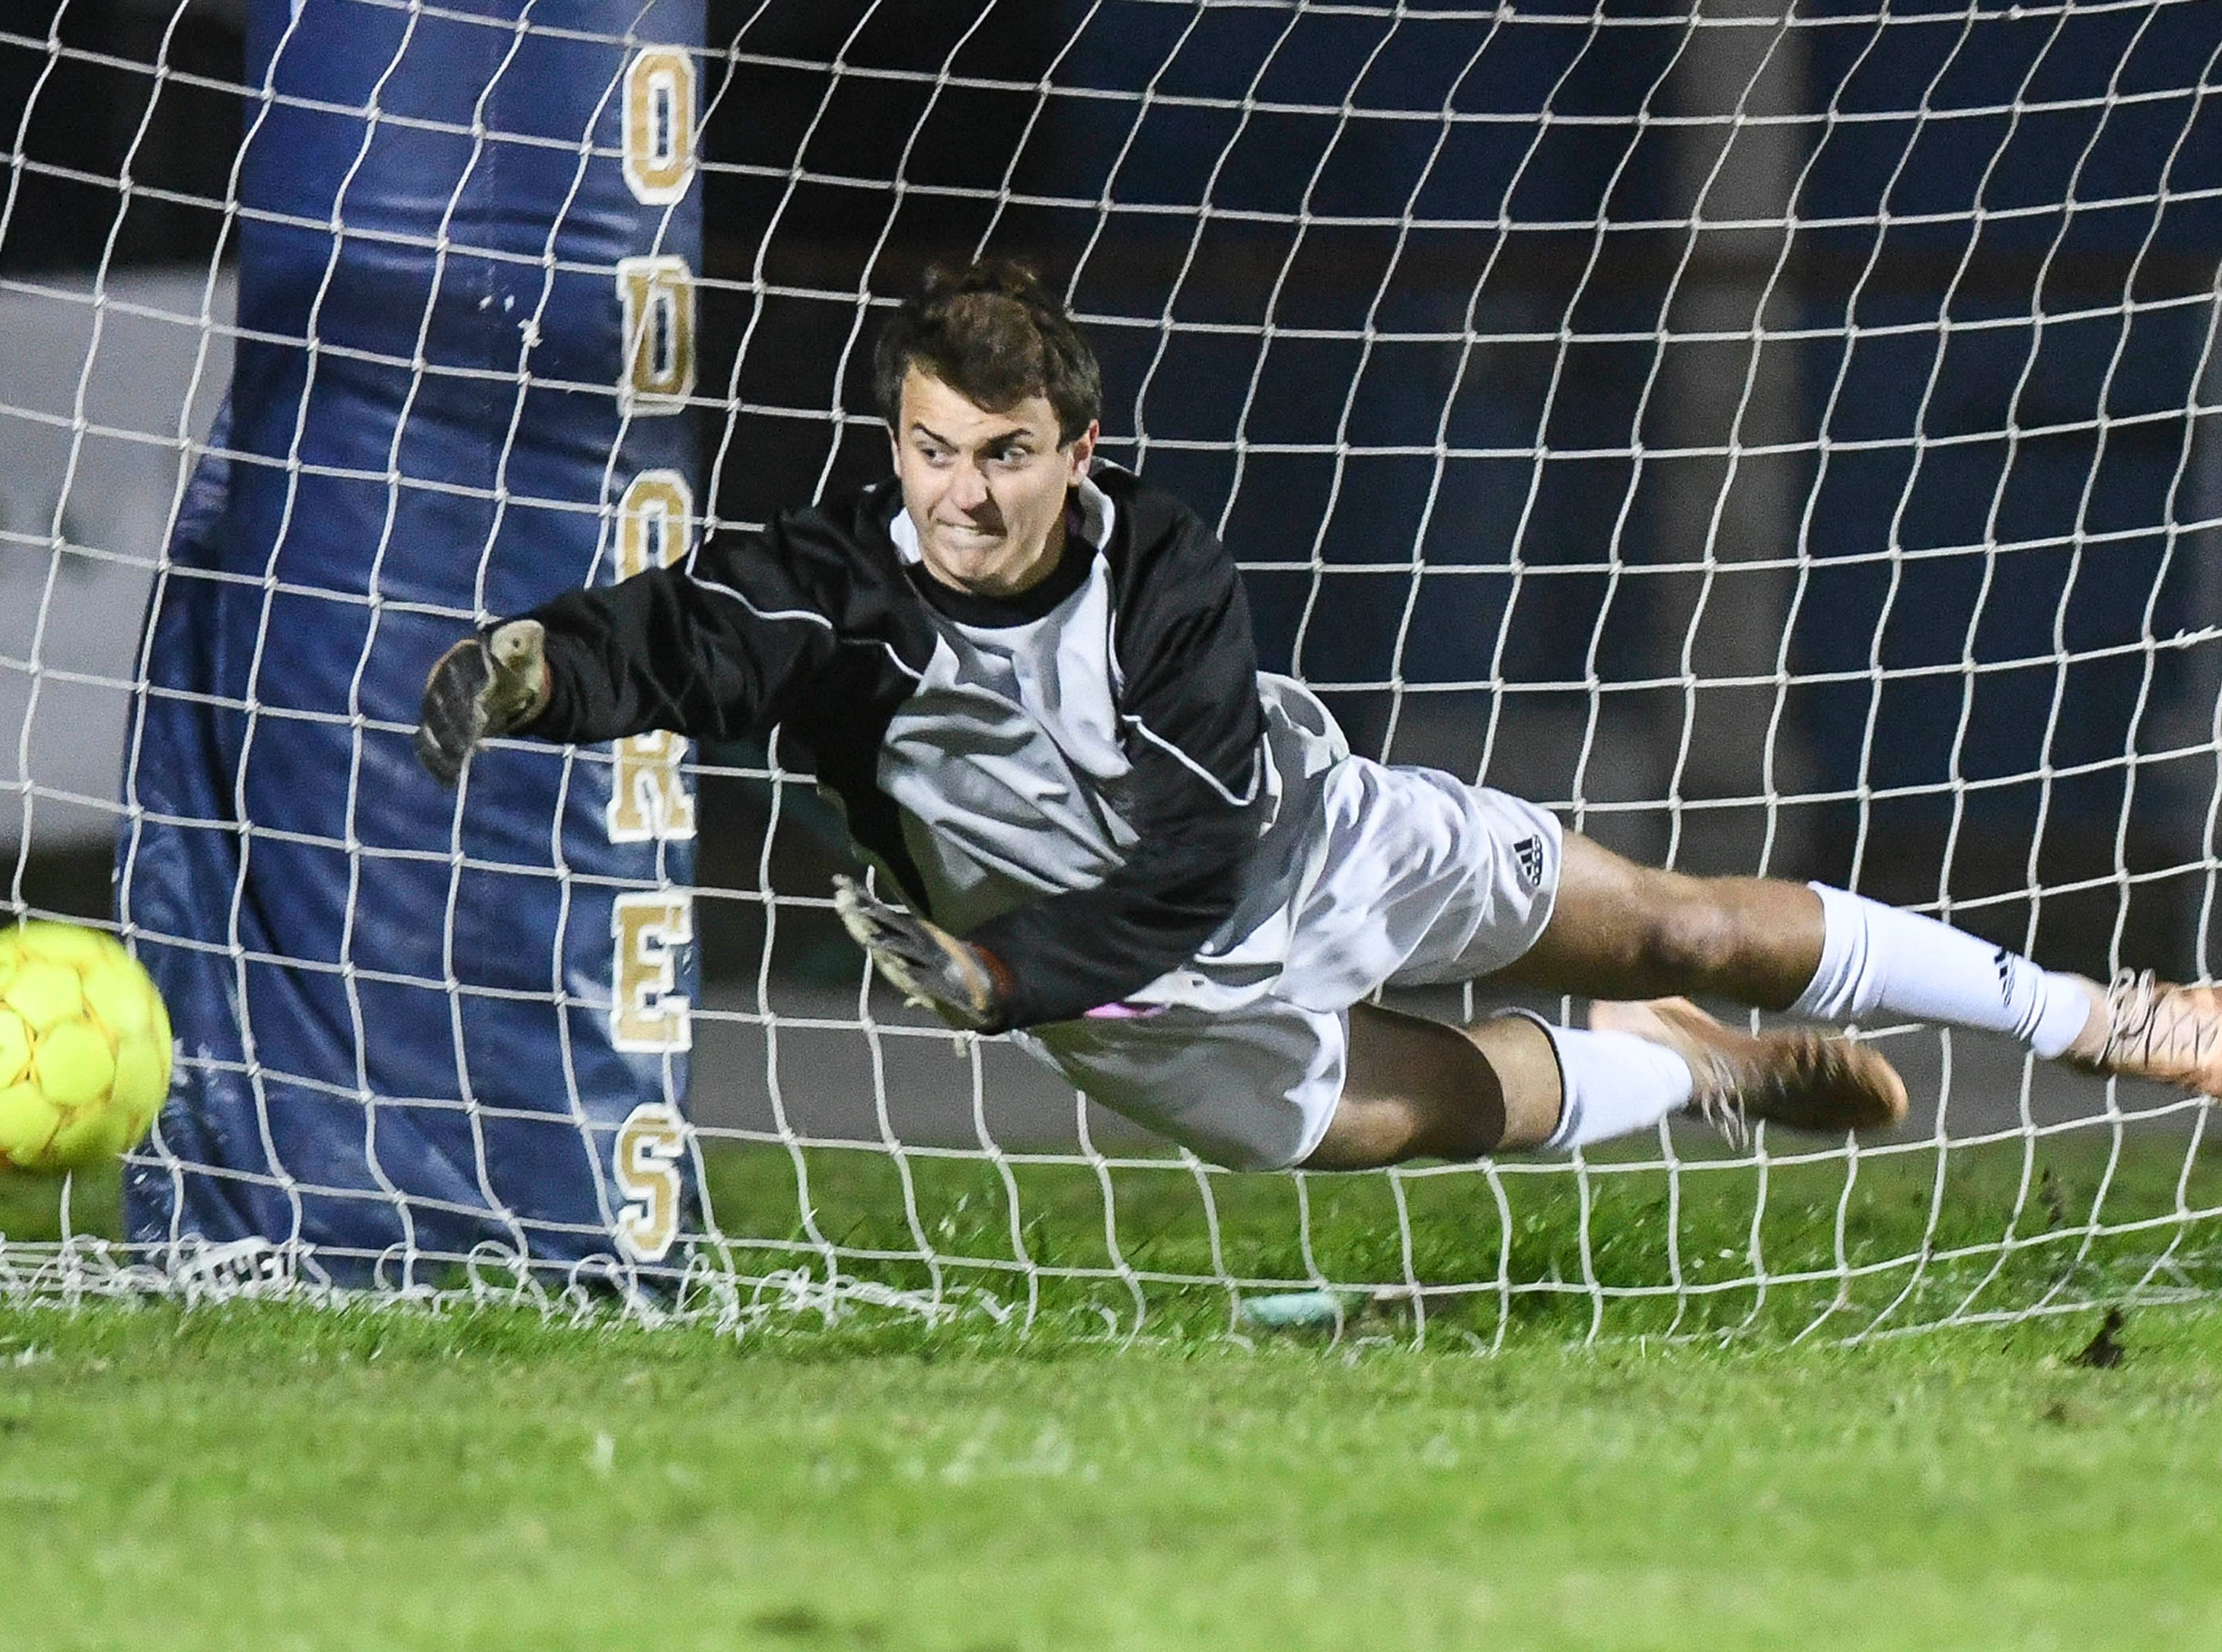 Rockledge goalkeeper Alex Rahal makes a diving save during Thursday's game in Melbourne.